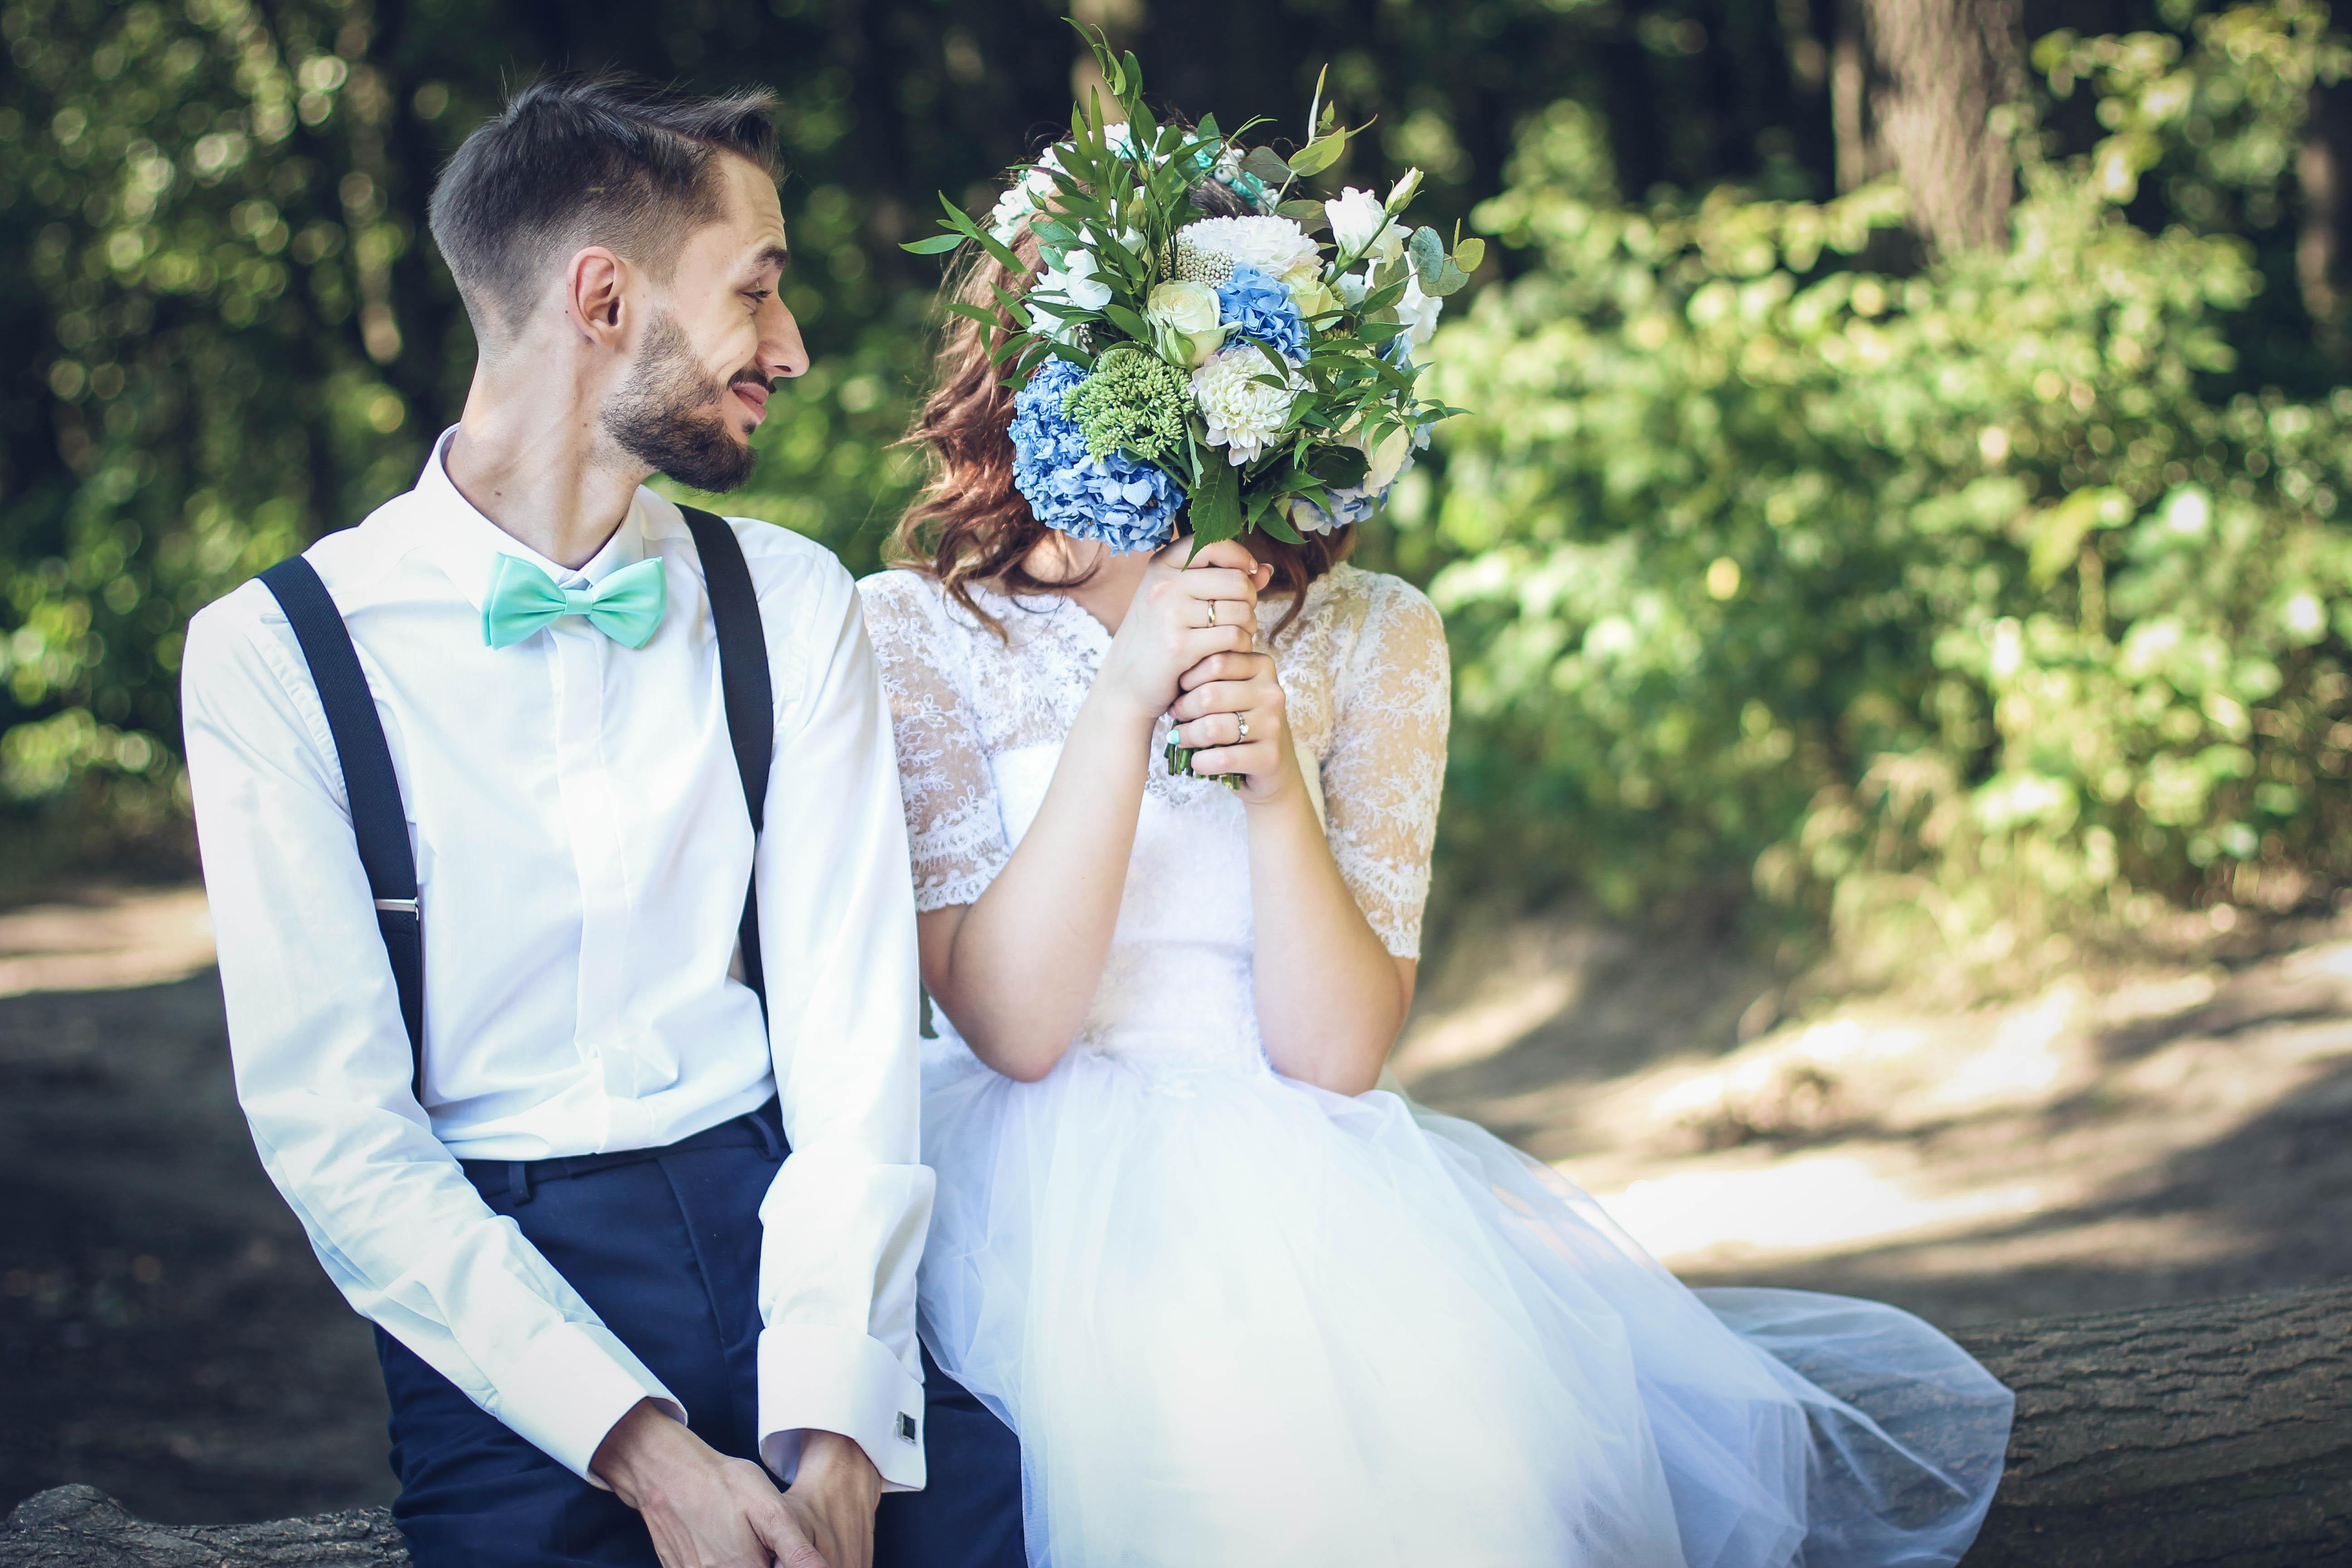 This Couples Wedding Photo Went Horribly Wrong in the Most Hysterical Way recommendations